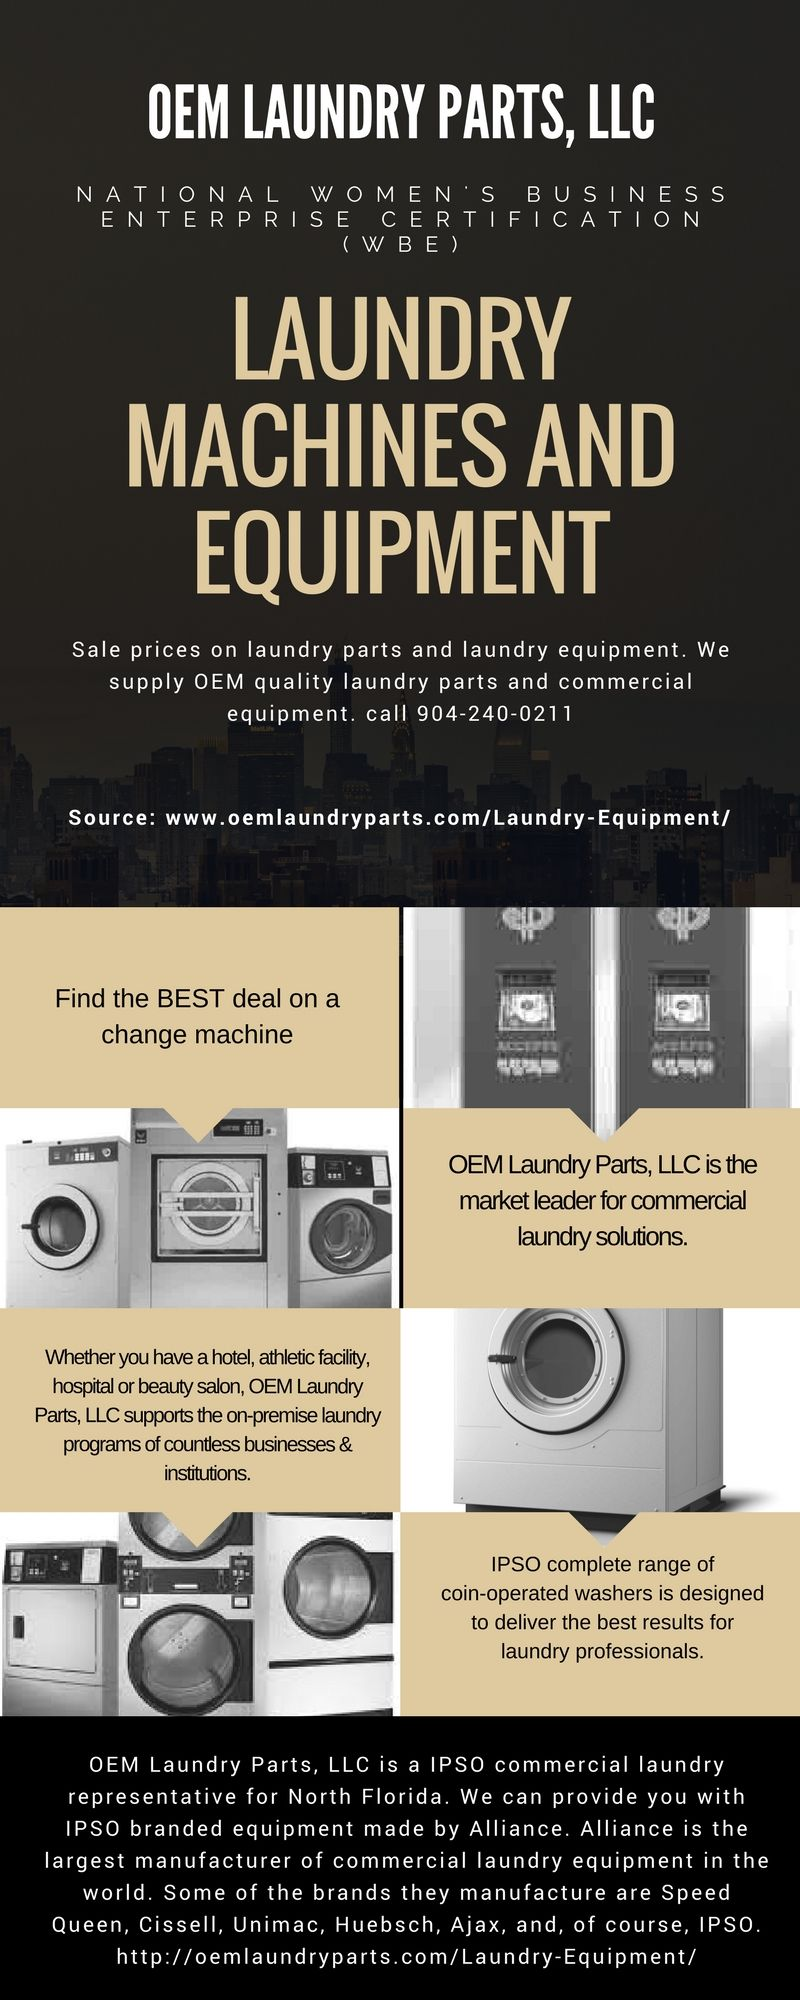 Oem Laundry Parts Llc Was Started In 2008 Today Oem Laundry